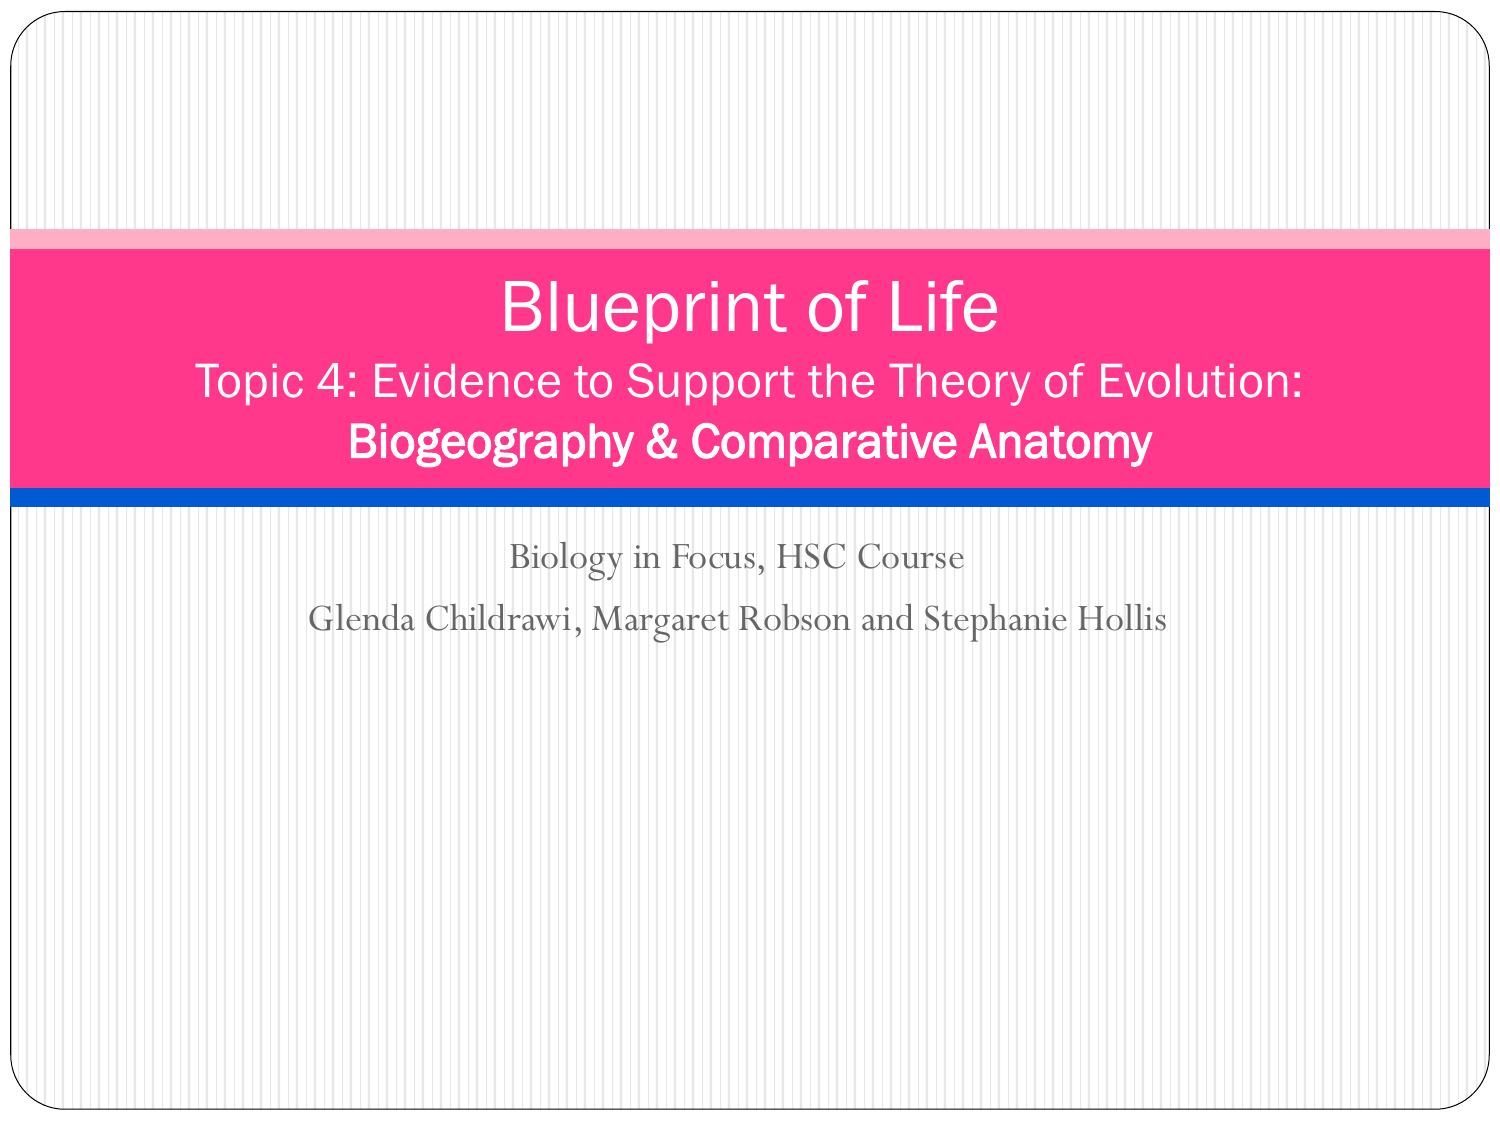 4.2.1 Evidence to support the theory of evolution